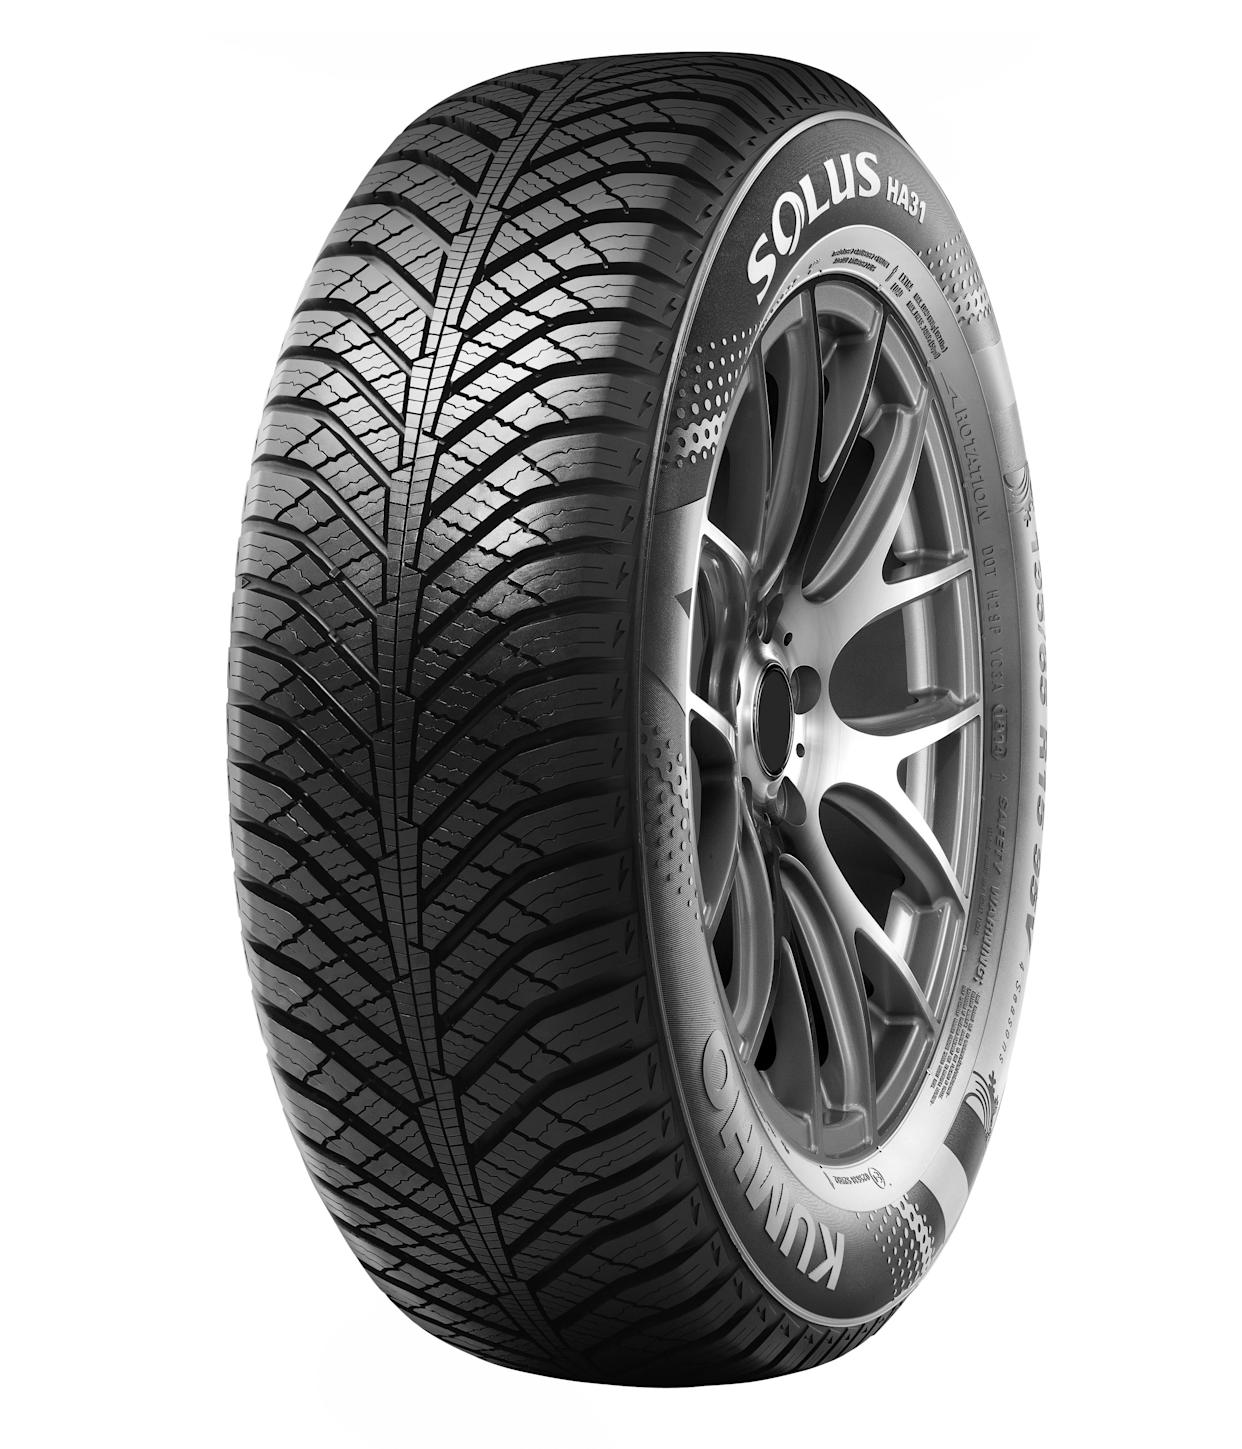 All-weather tyres feature different grooves